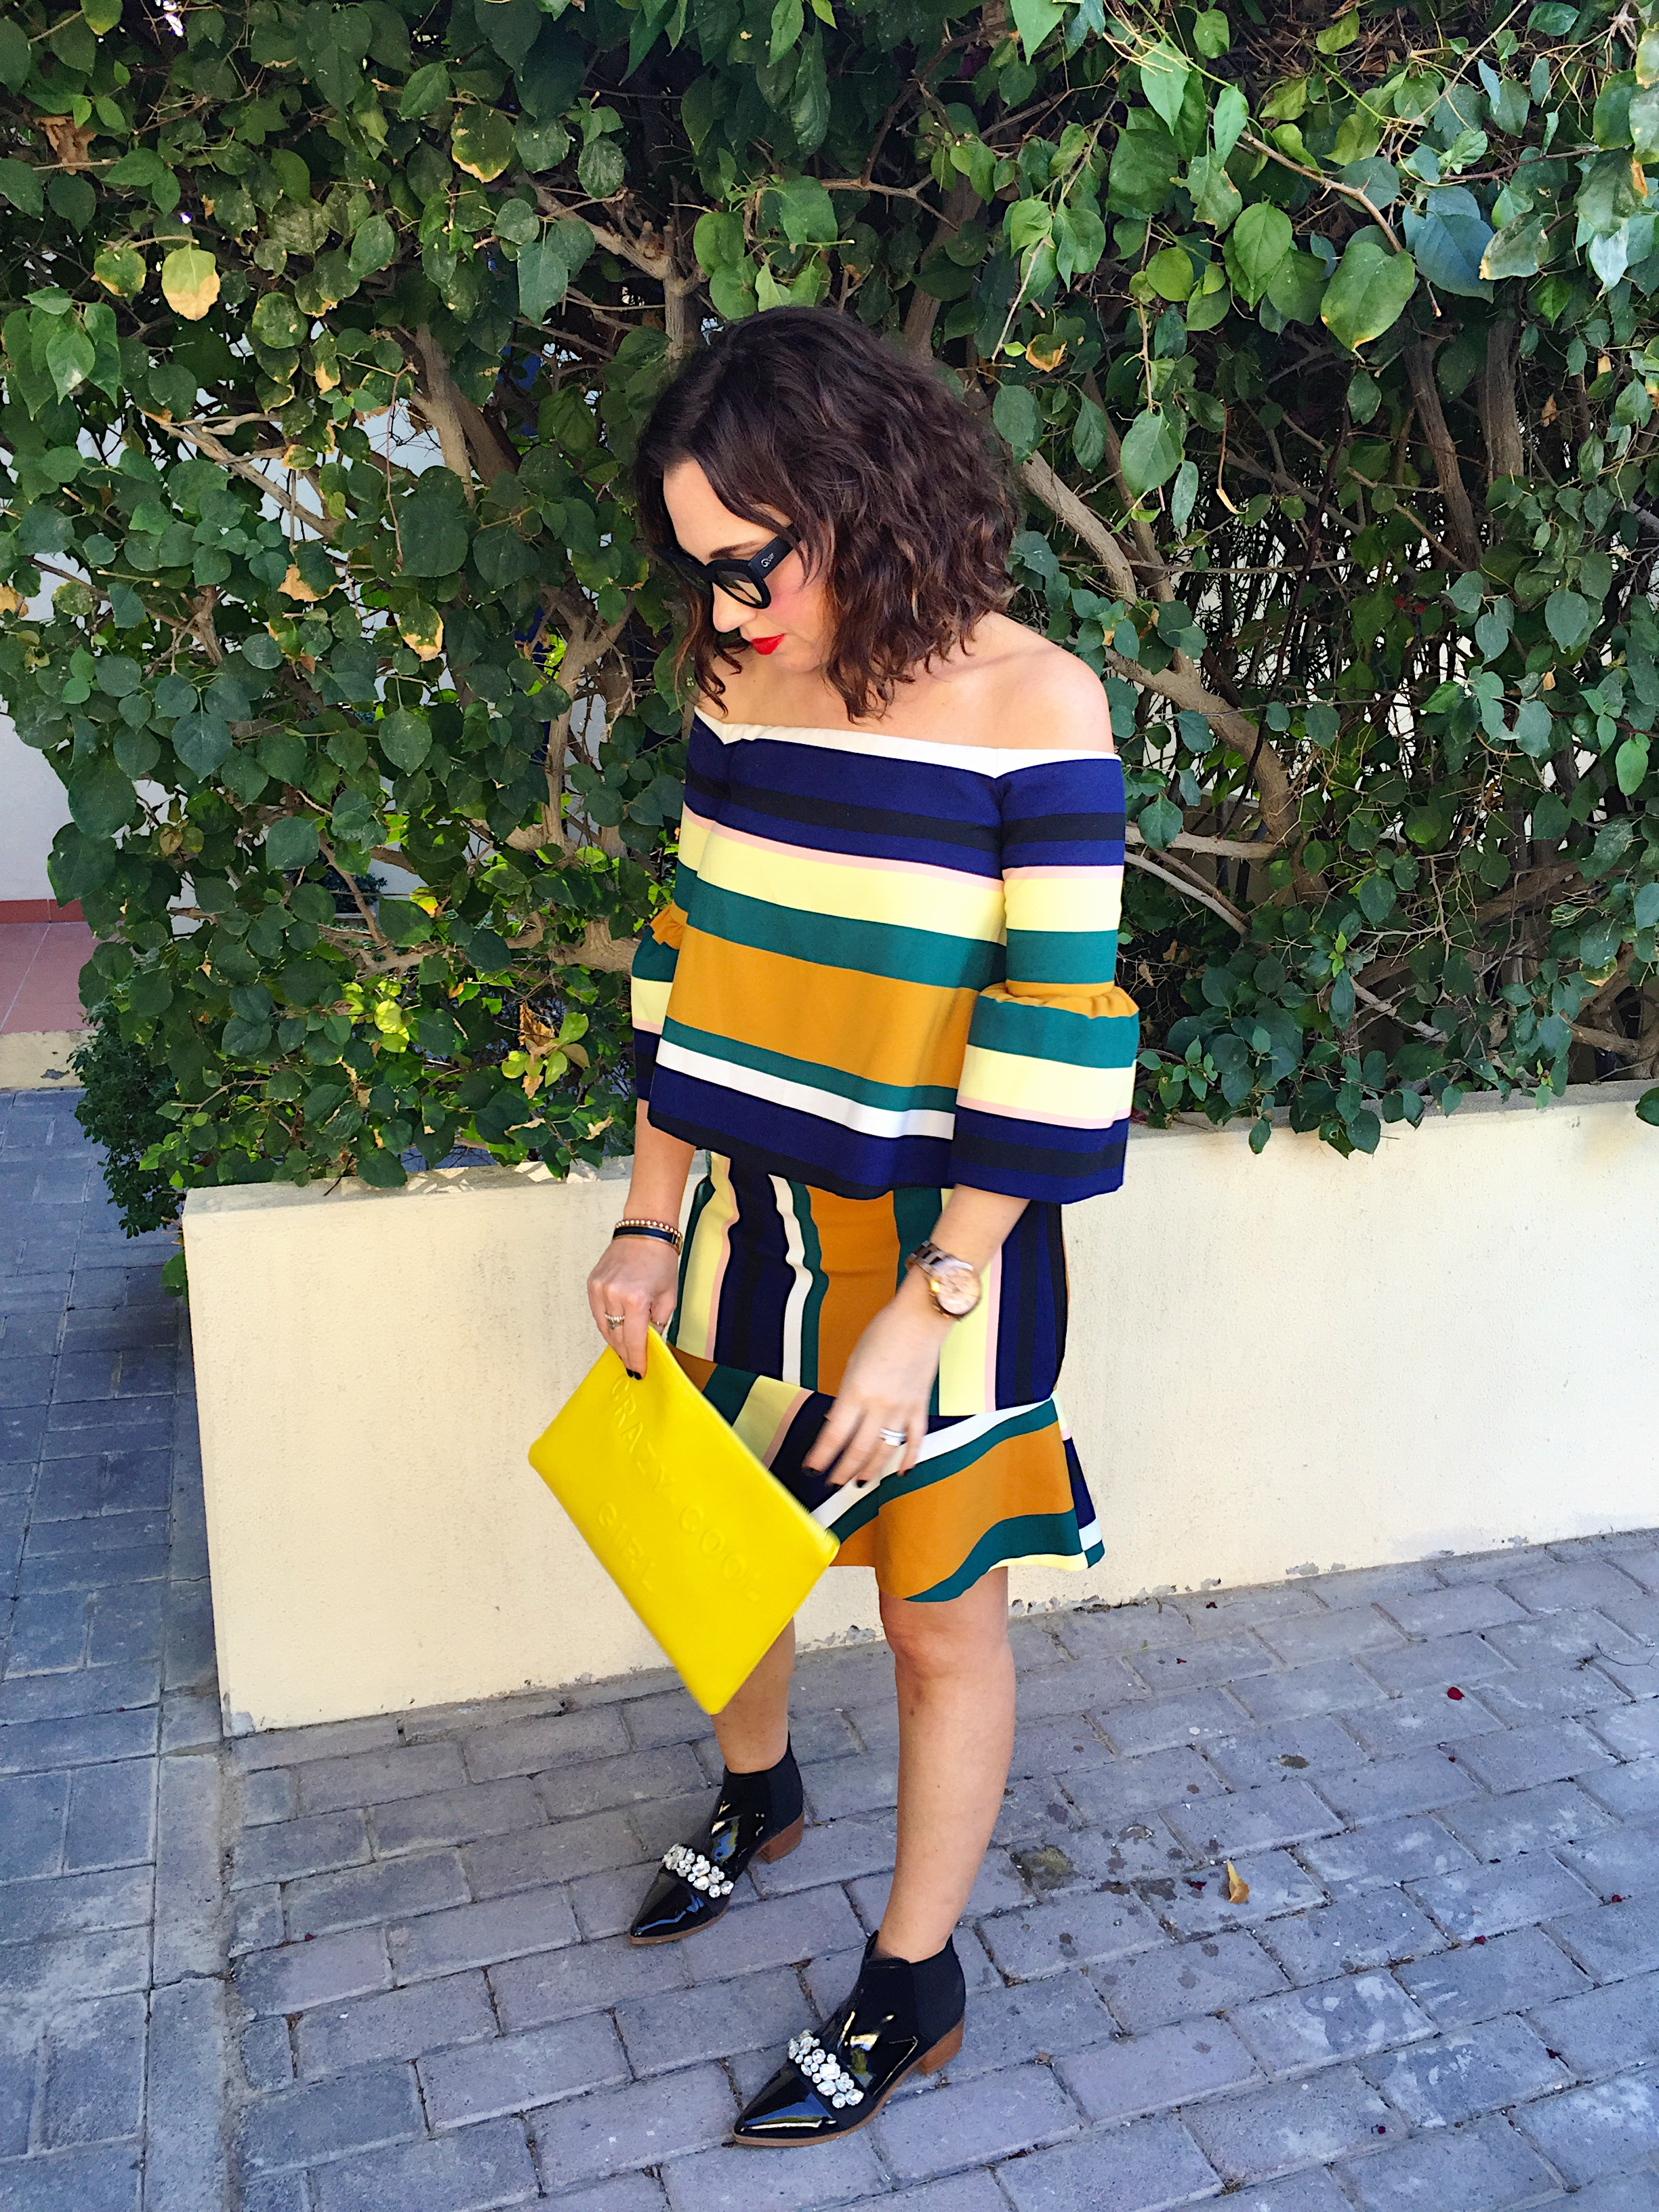 zara-cordinated-set-coord-blog-outfit-post-gingham-and-sparkle-strips-horizontal-navy-black-mustard-green-white-lemon-ss2016-spring-summer-new-stock-fashion-style-red-lips-yellow-clutch-asos-black-patent-pointy-toe-boots-jewels-quay-australia-kitti-sunglasses-sunnies-skirt-top-off-the-shoulder-dubai-ireland-two-piece